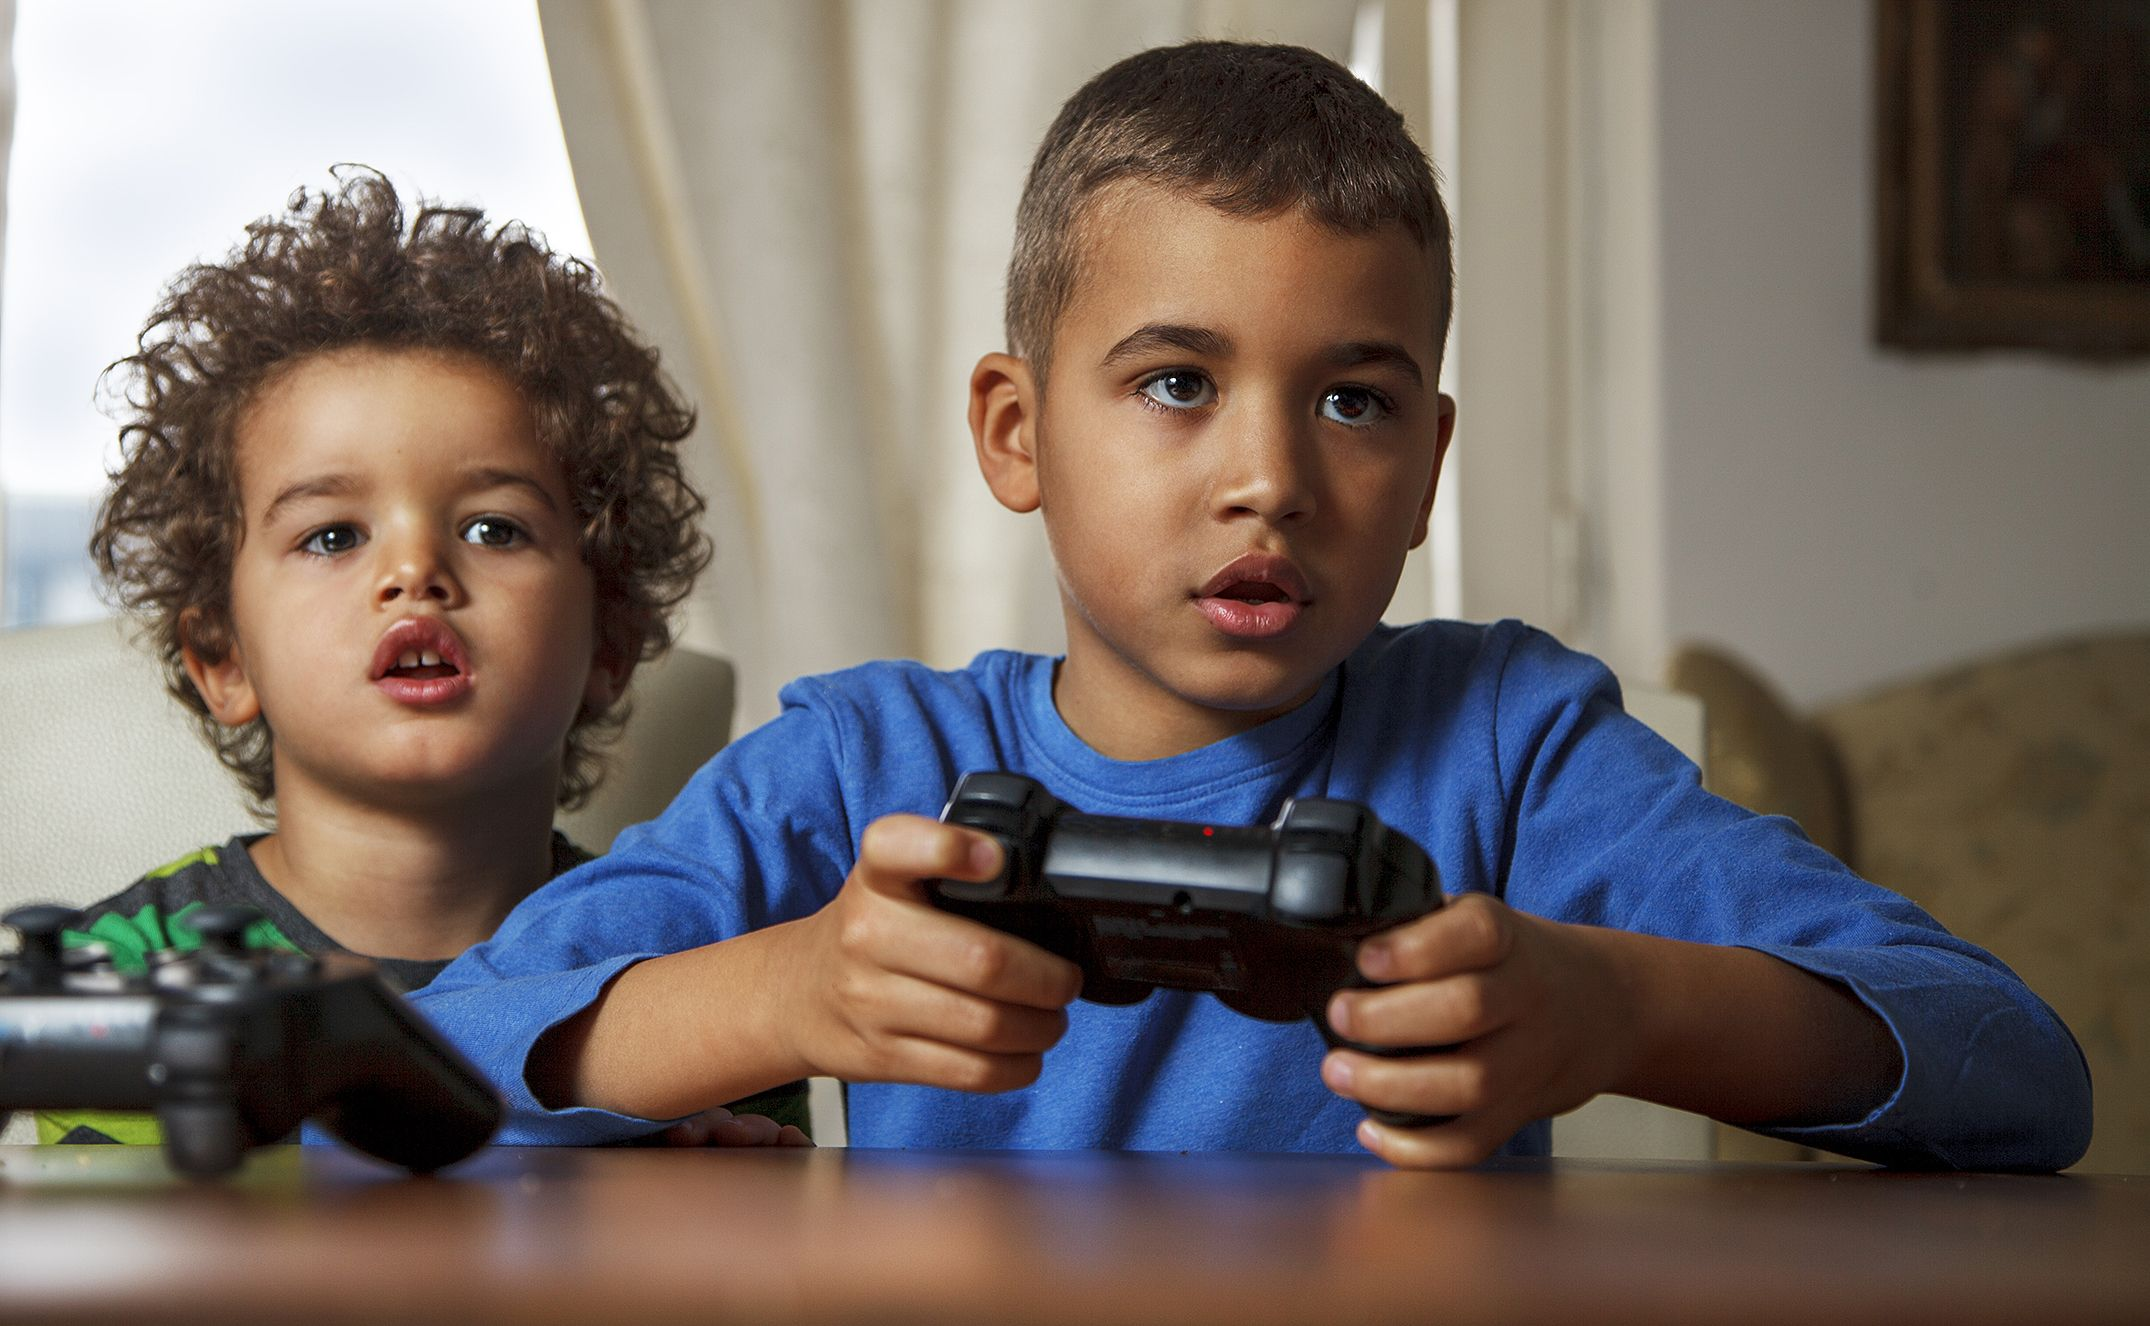 Benefits of Play Revealed in Research on Video Gaming | Psychology Today